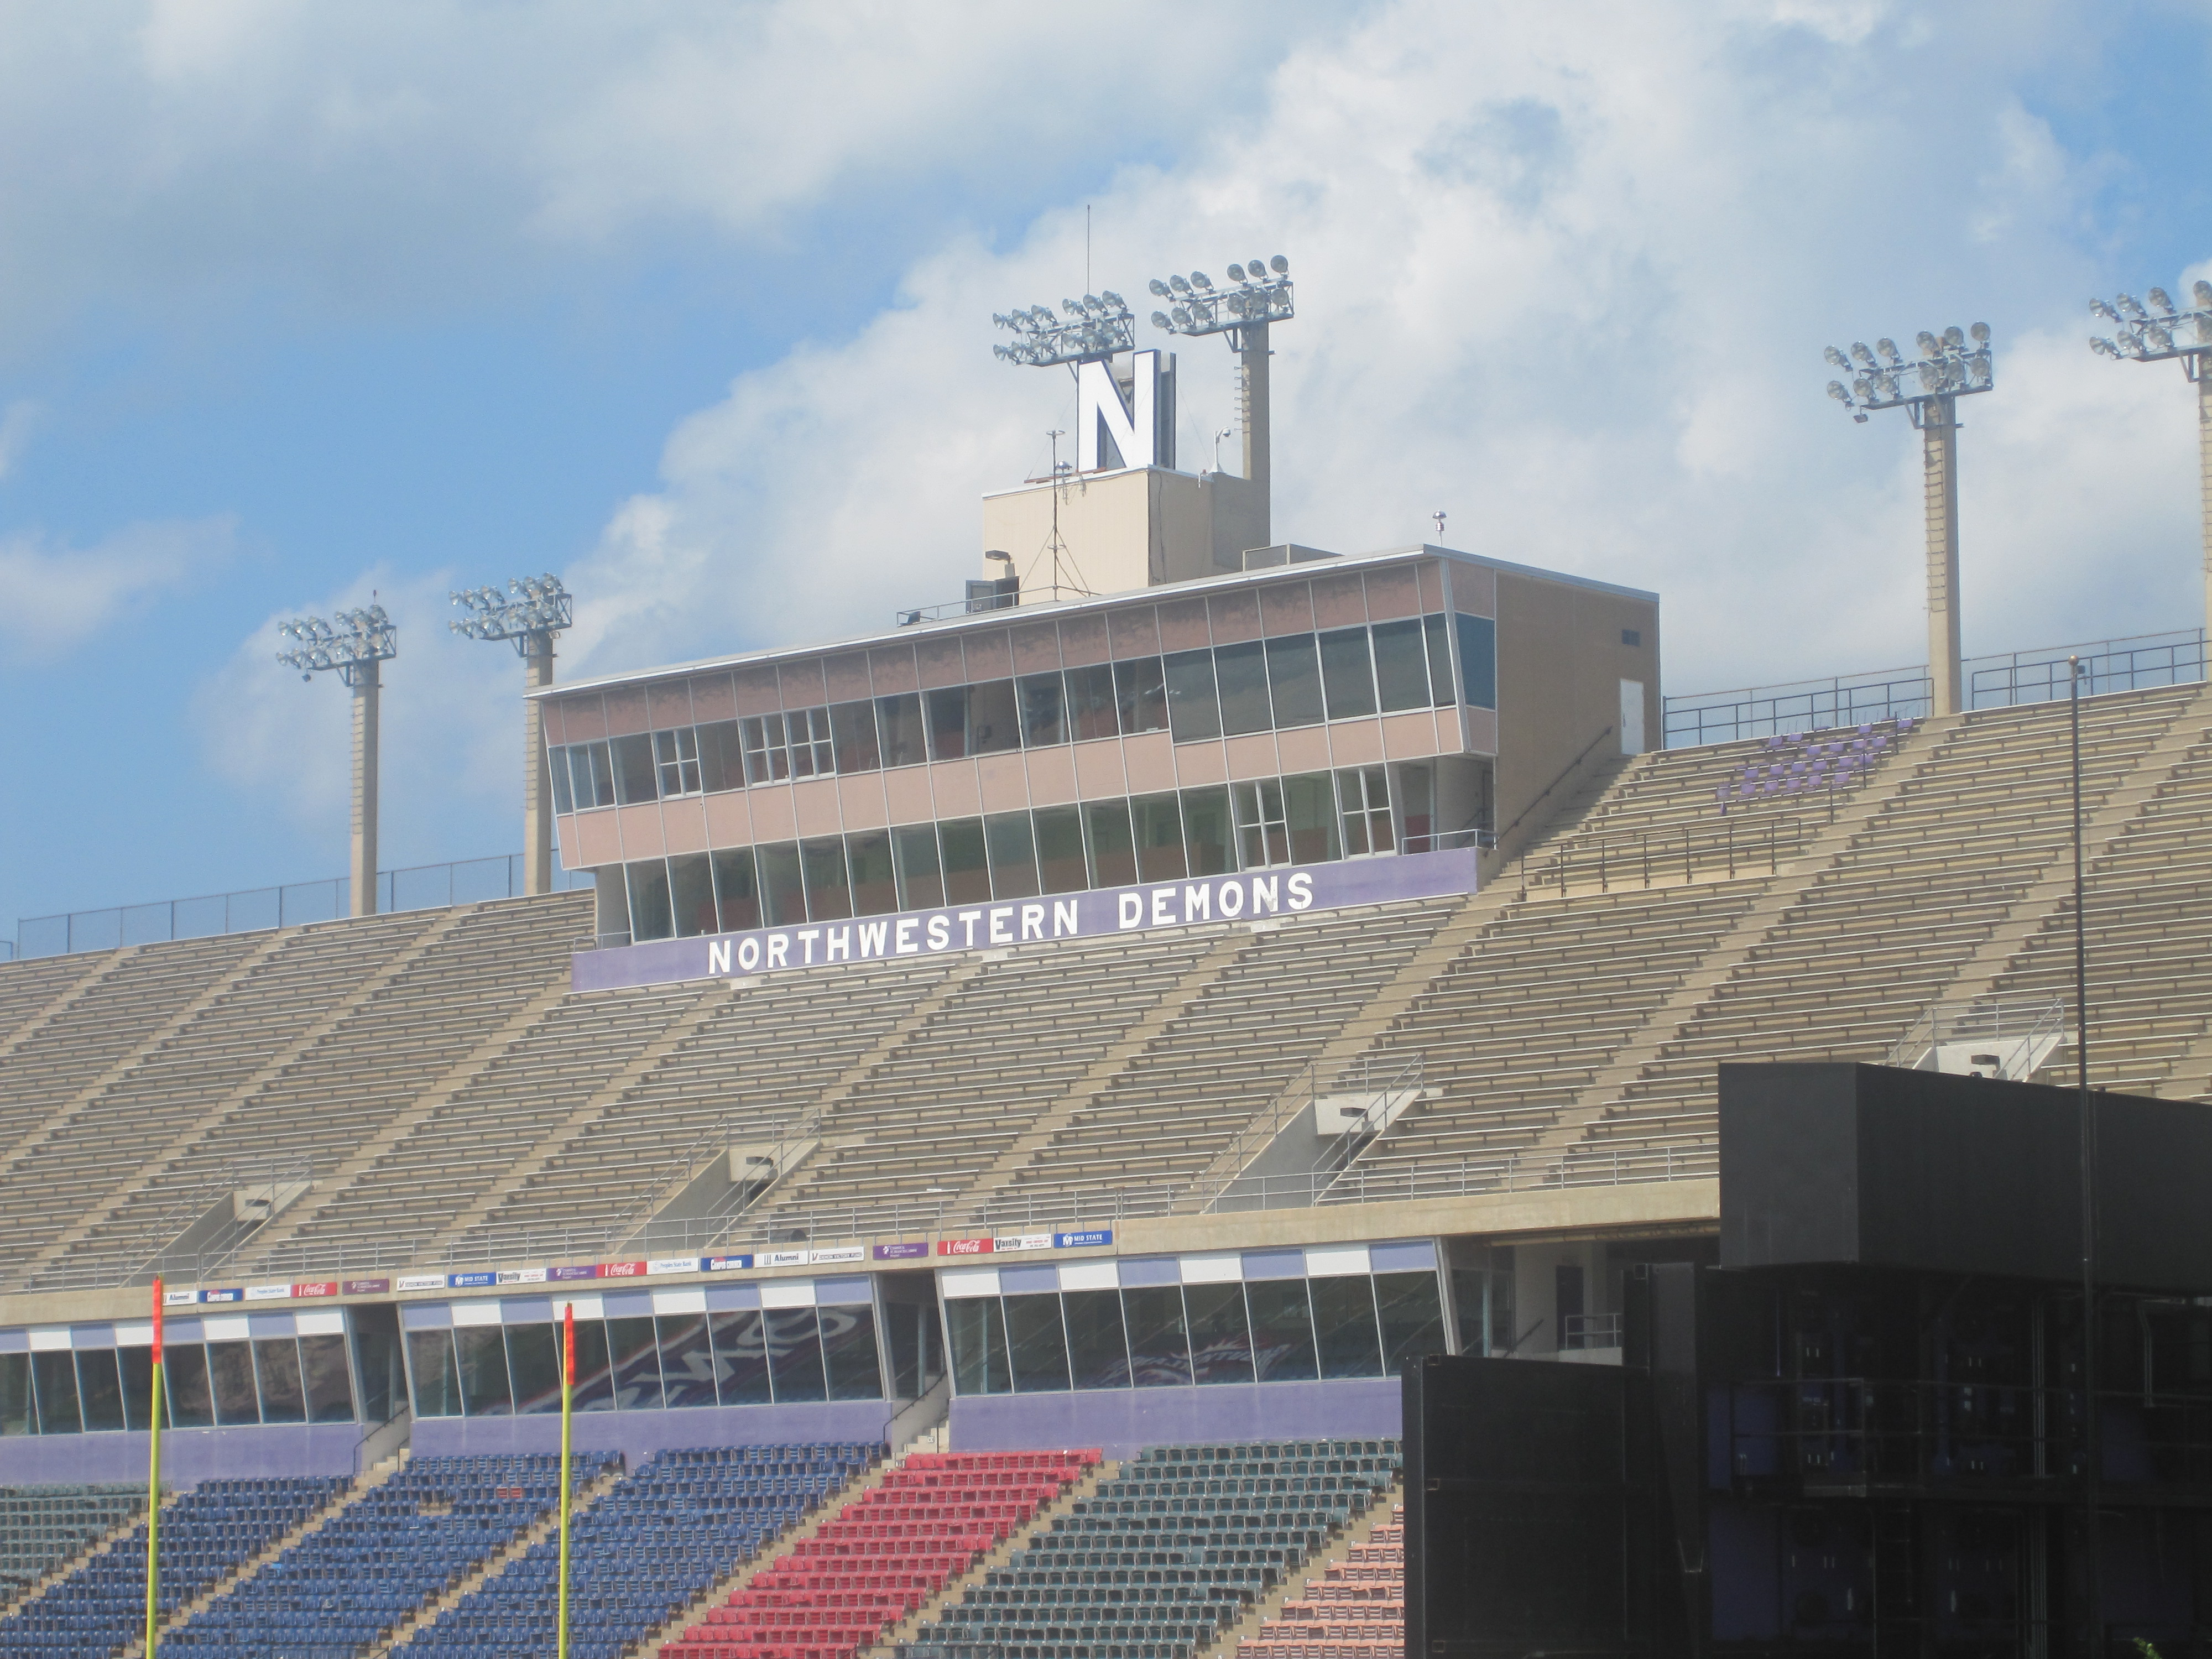 Description nsu demons football stadium img 2010